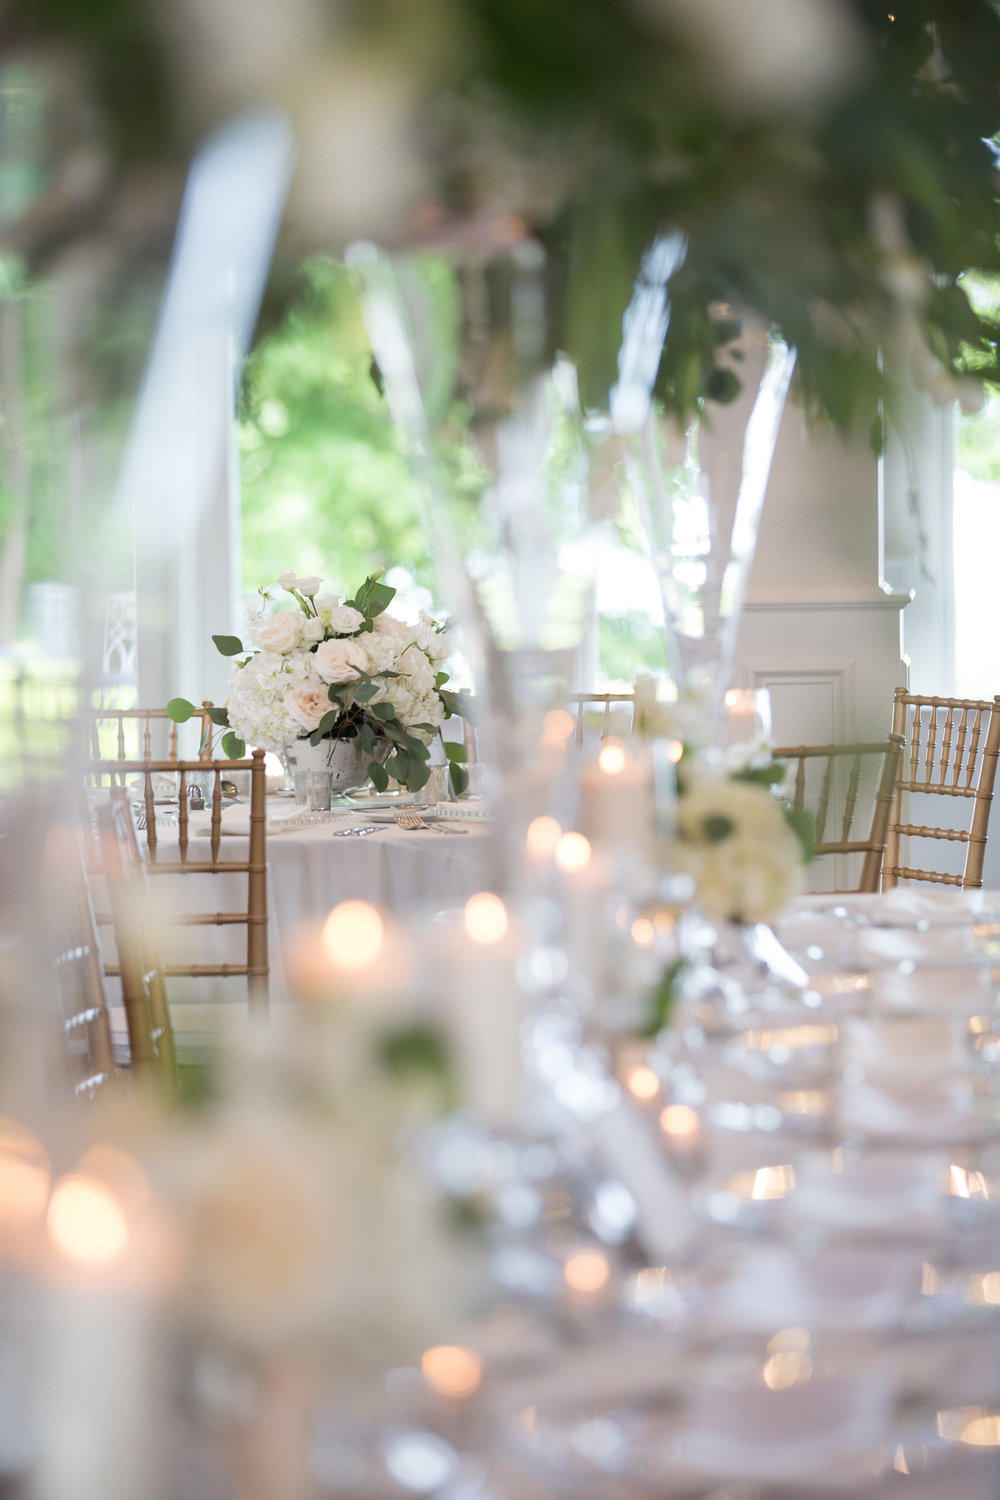 Charlotte North Carolina Wedding, Trump National Golf Course Wedding, Lakeside wedding, Blush Ivory and Greenery Wedding Design, The Graceful Host, Classic Wedding, Low Centerpiece, Wedding Flowers, Compote Wedding Centerpiece, Wedding Table Number Names, Peony Wedding, Spring Wedding, All White Wedding